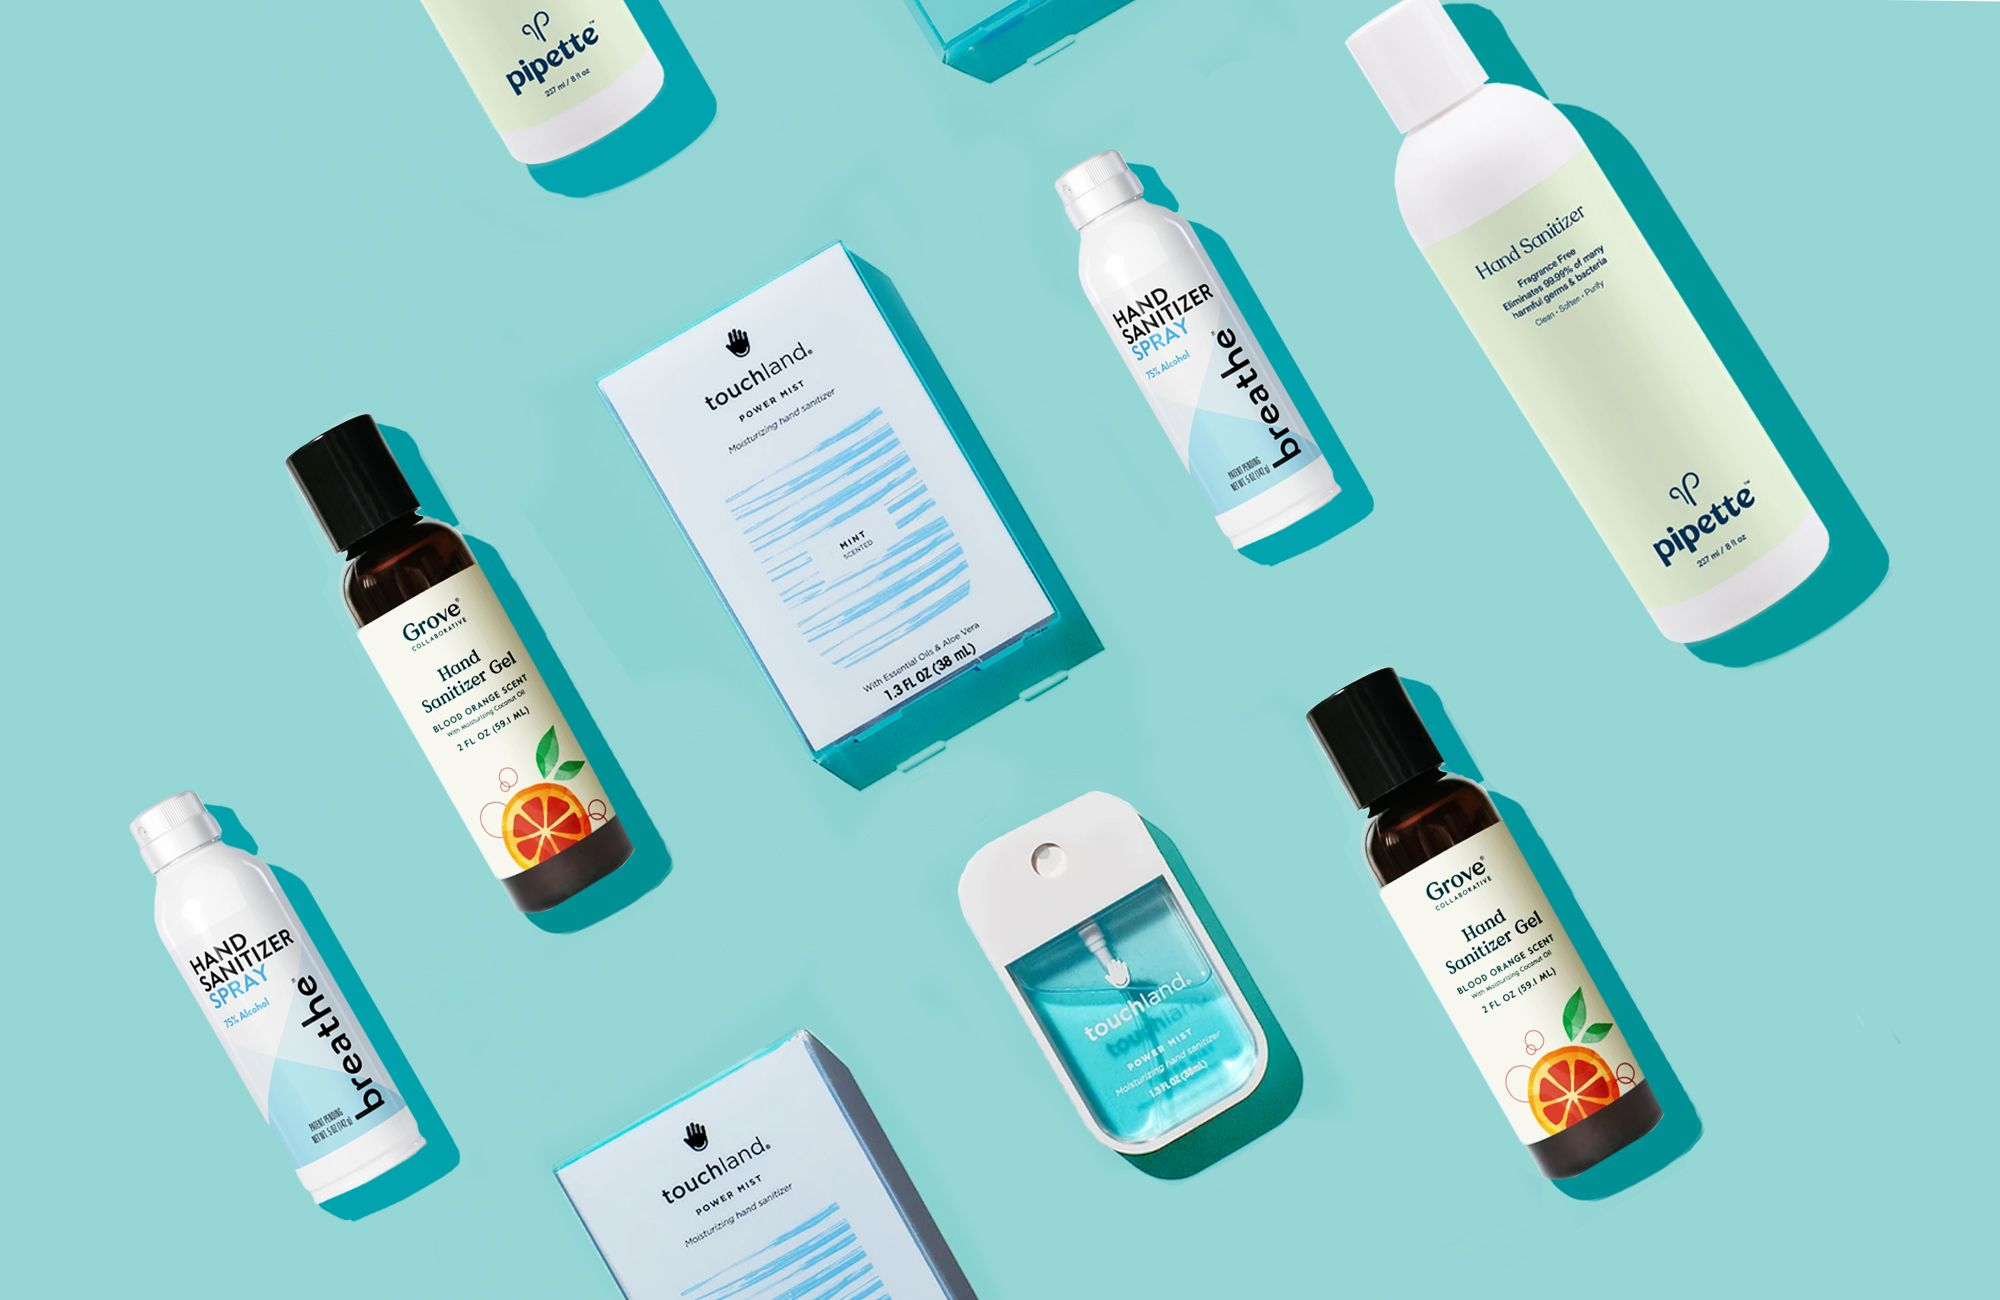 15 Best Hand Sanitizers Sprays And Gels 2021 According To Experts